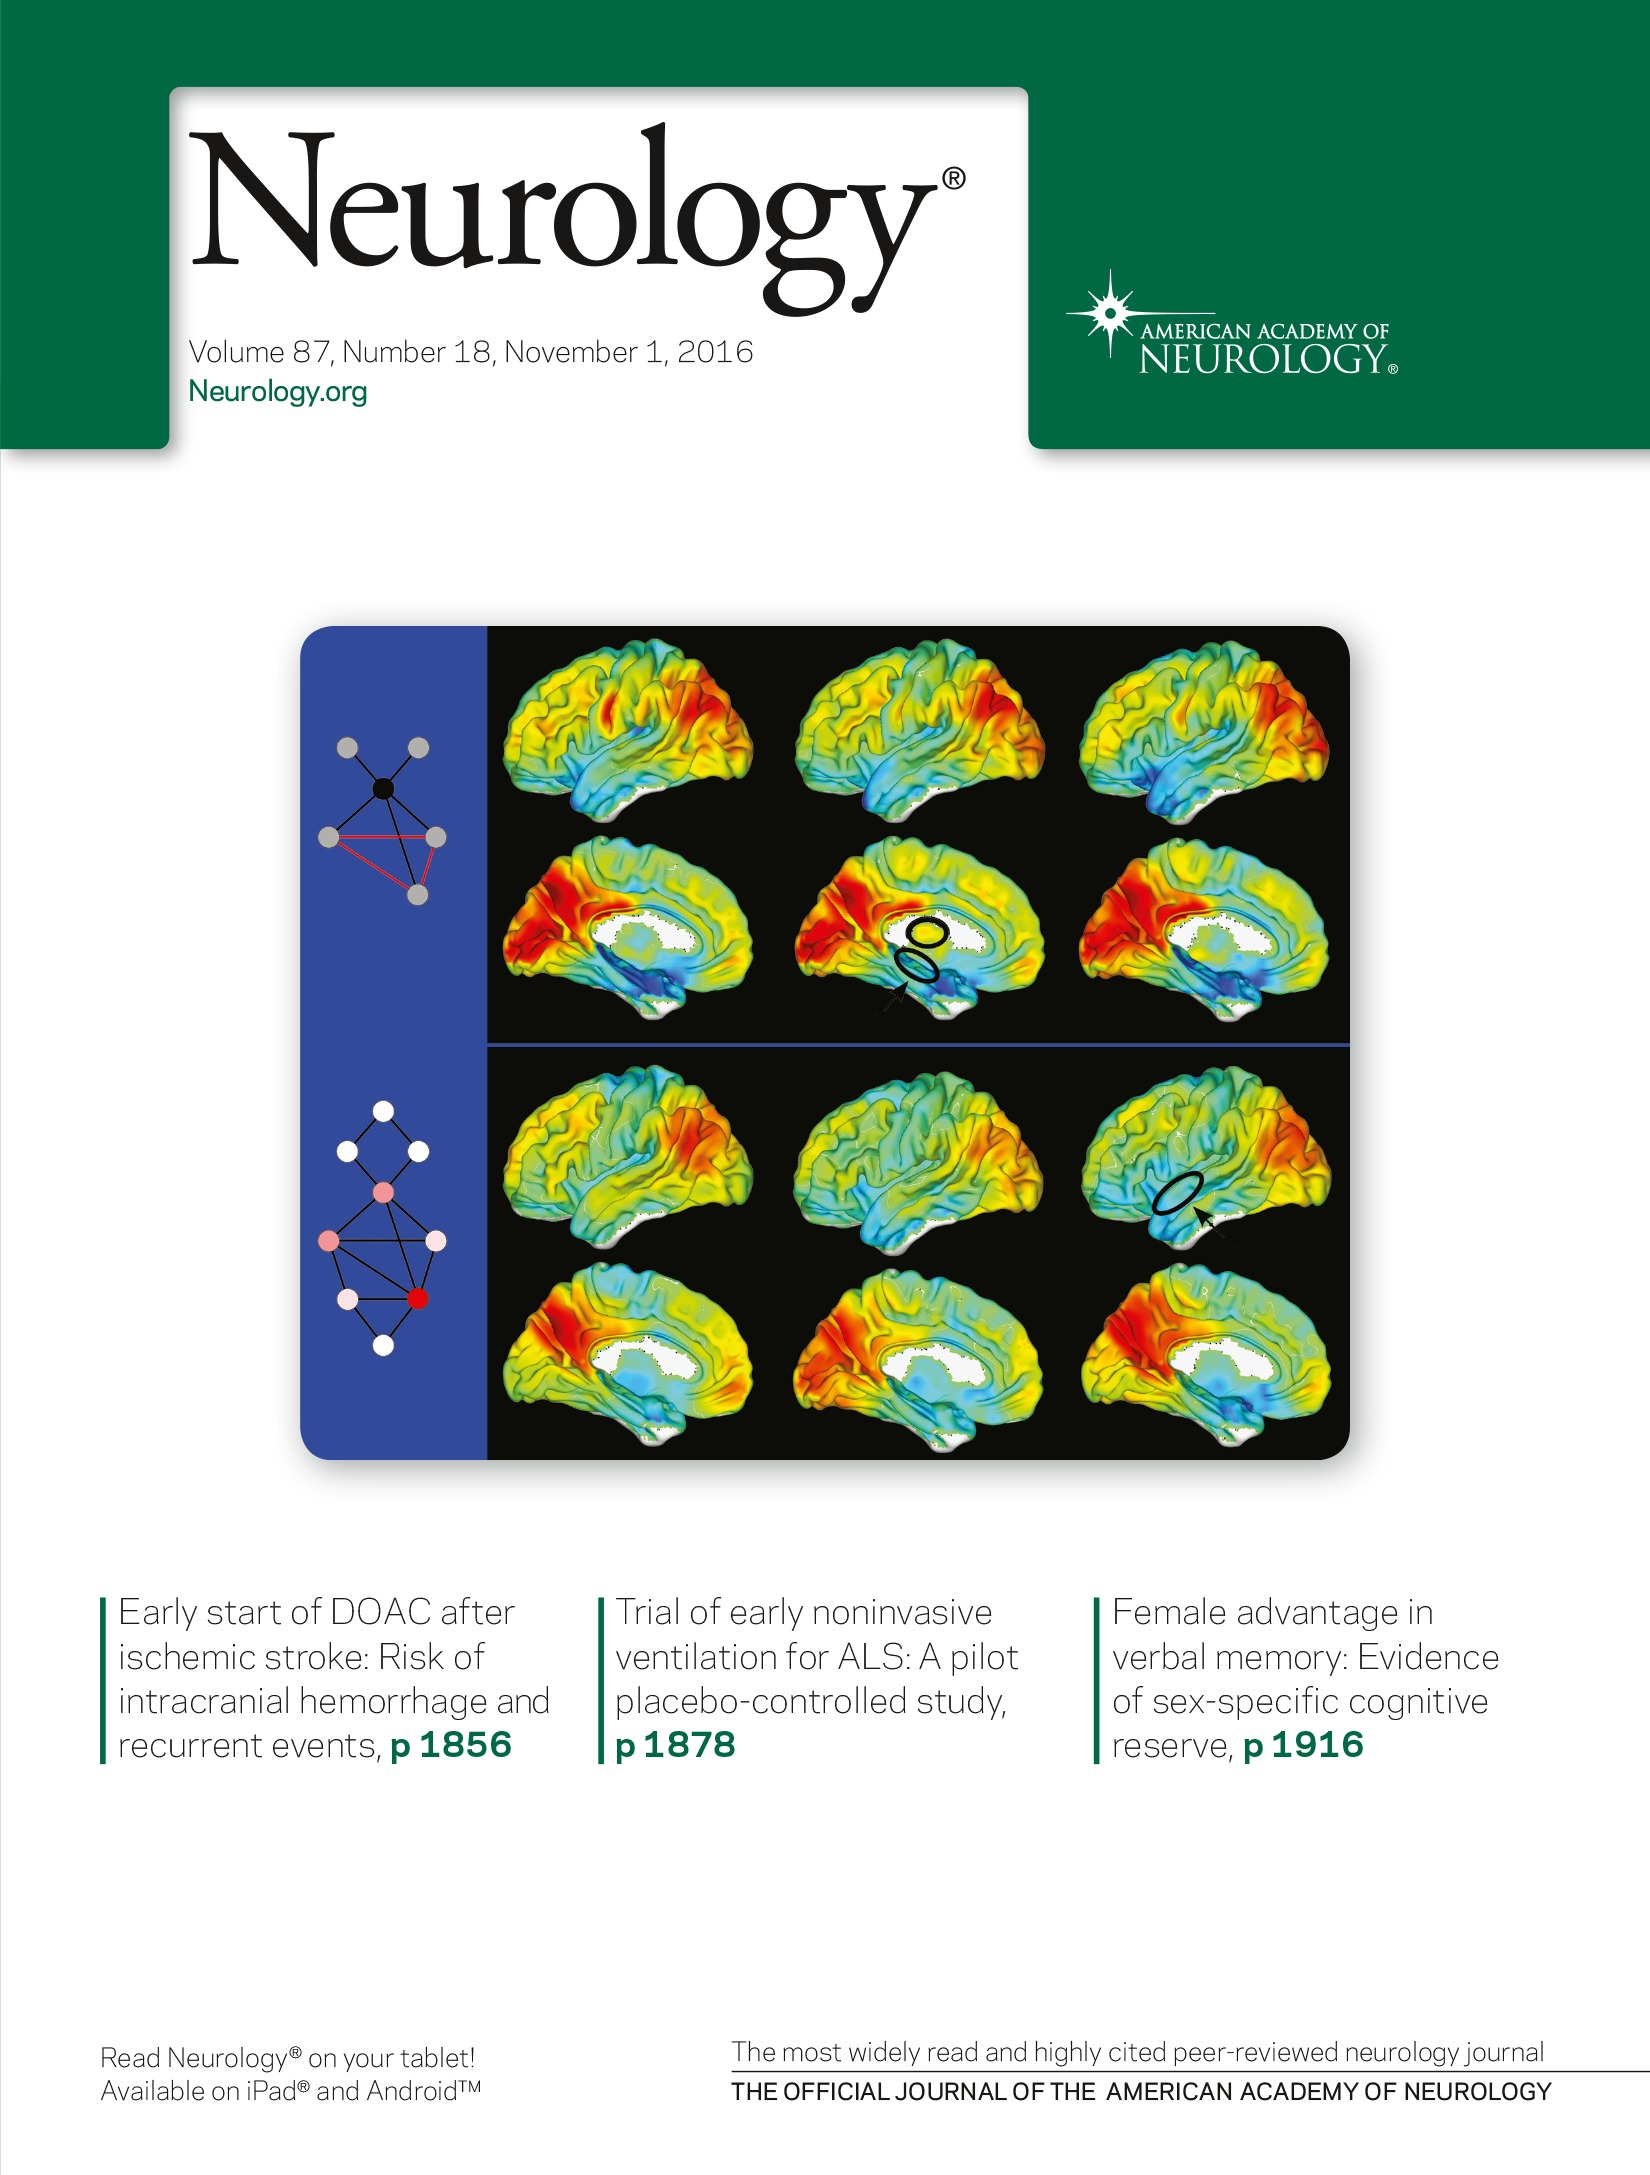 Emerging Subspecialties in Neurology: Pediatric stroke and